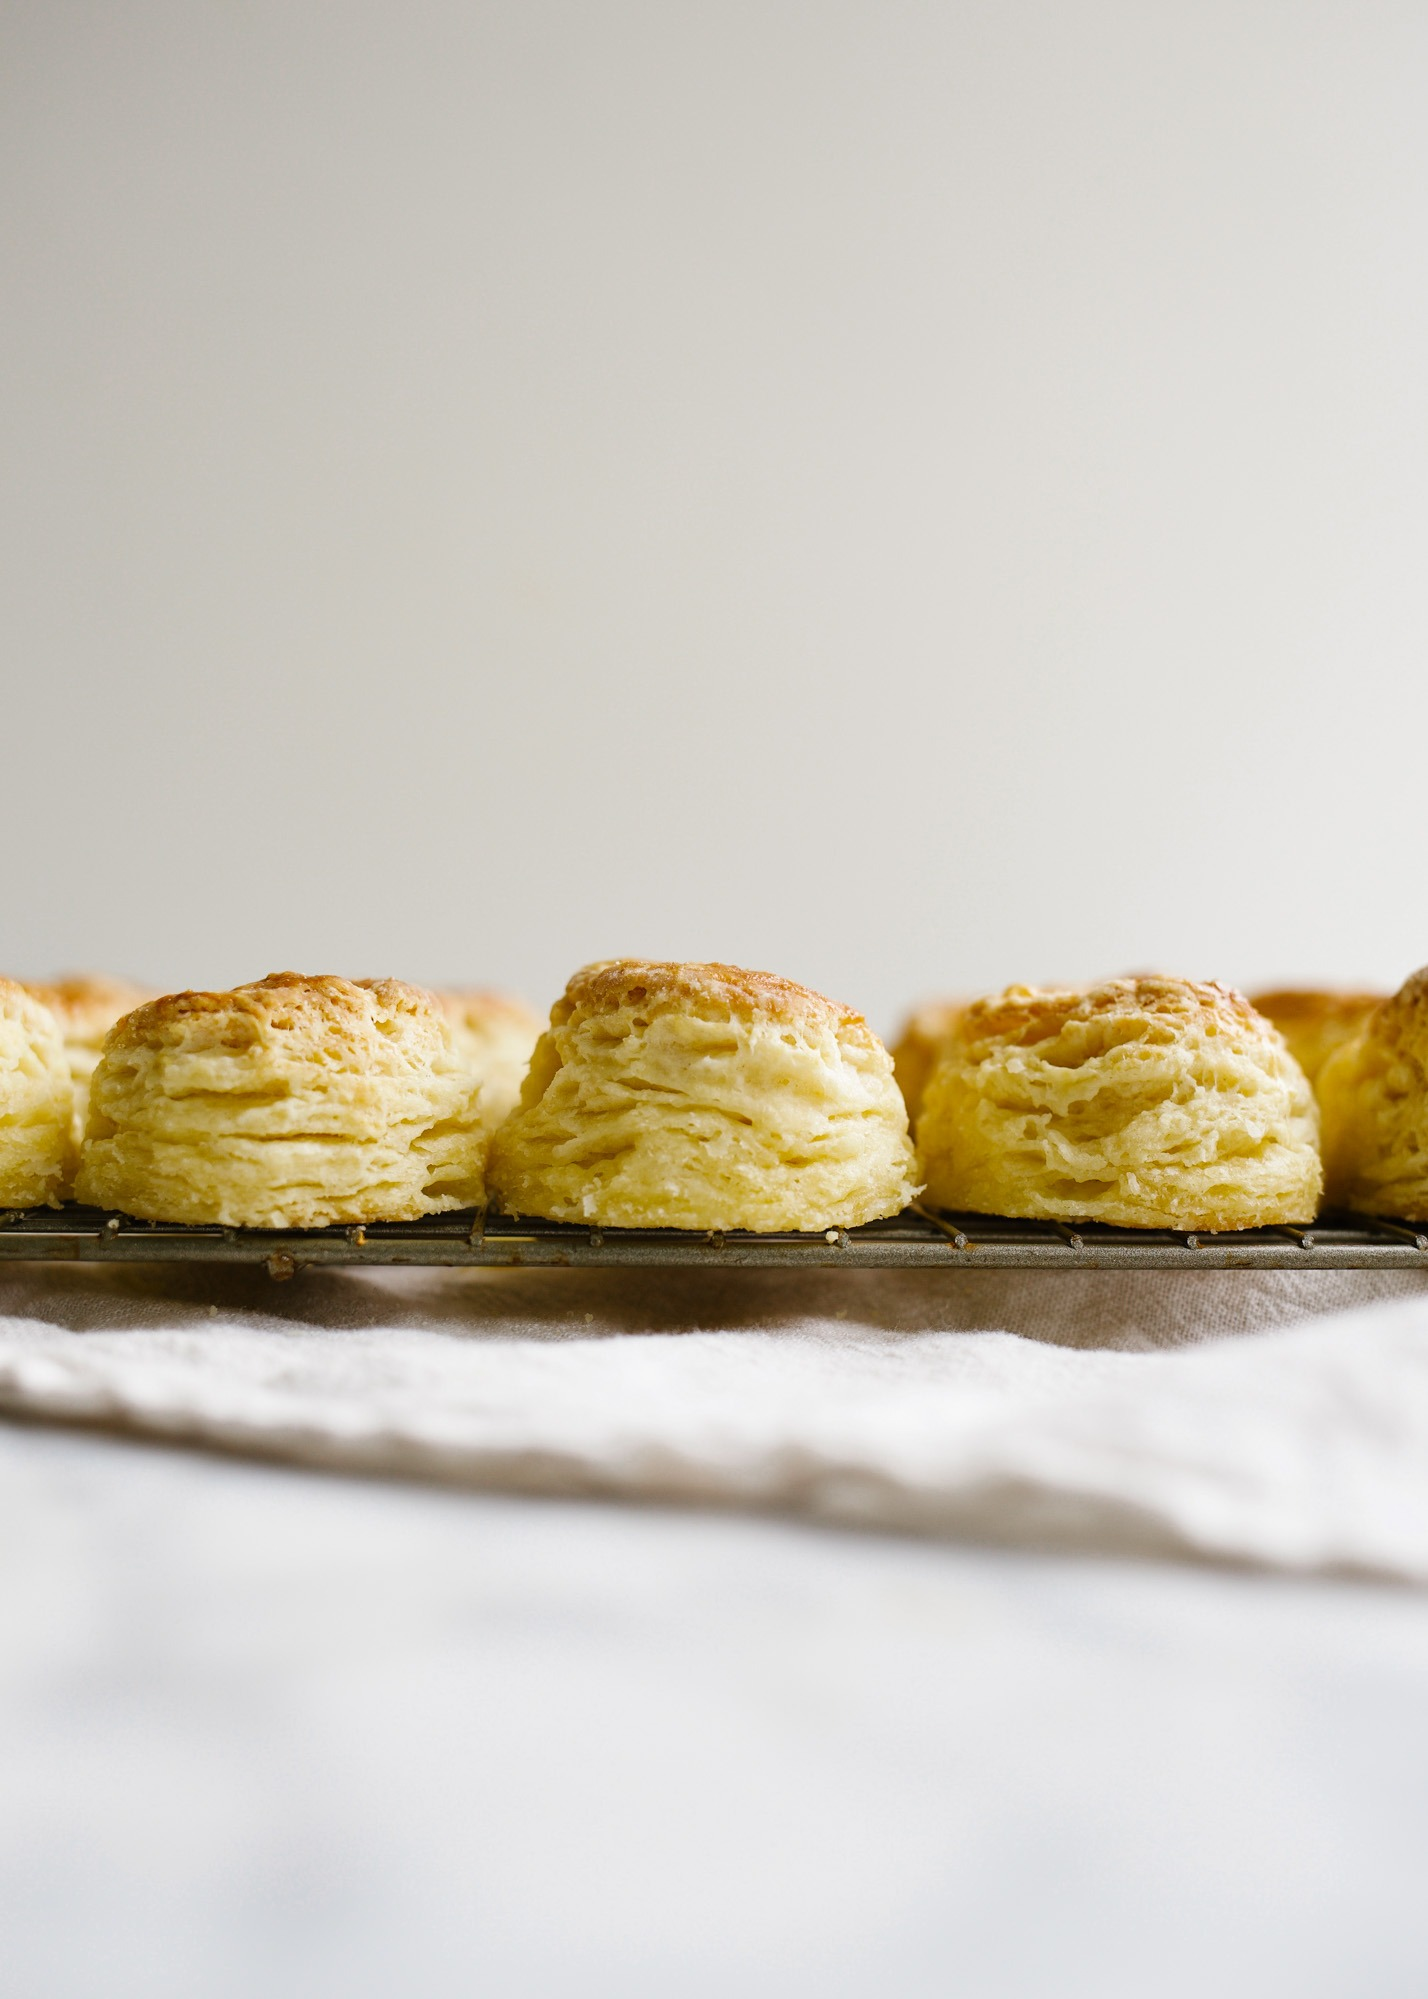 Mini Buttermilk Biscuits by Wood and Spoon blog. These are buttery bite sized laminated biscuits with flaky layers and loads of flavor. Learn how to make perfect Southern biscuits at home that taste even better than the store bought ones in the can. Also some things to do while social distancing and staying at home with coronavirus. Learn what moms and women can do at home now on thewoodandspoon.com